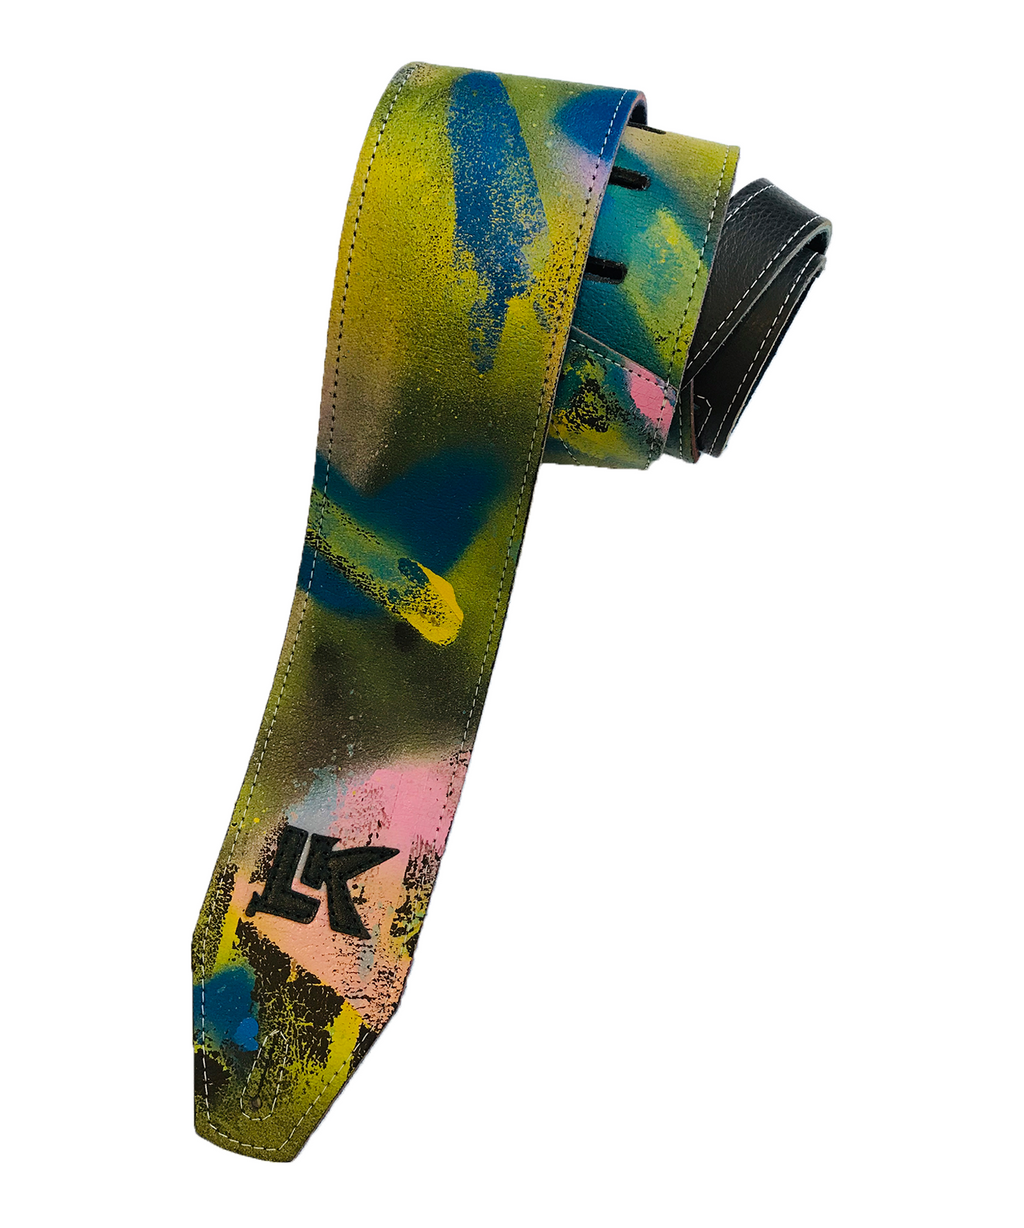 LK Blue Pink Yellow Spray Paint Strap